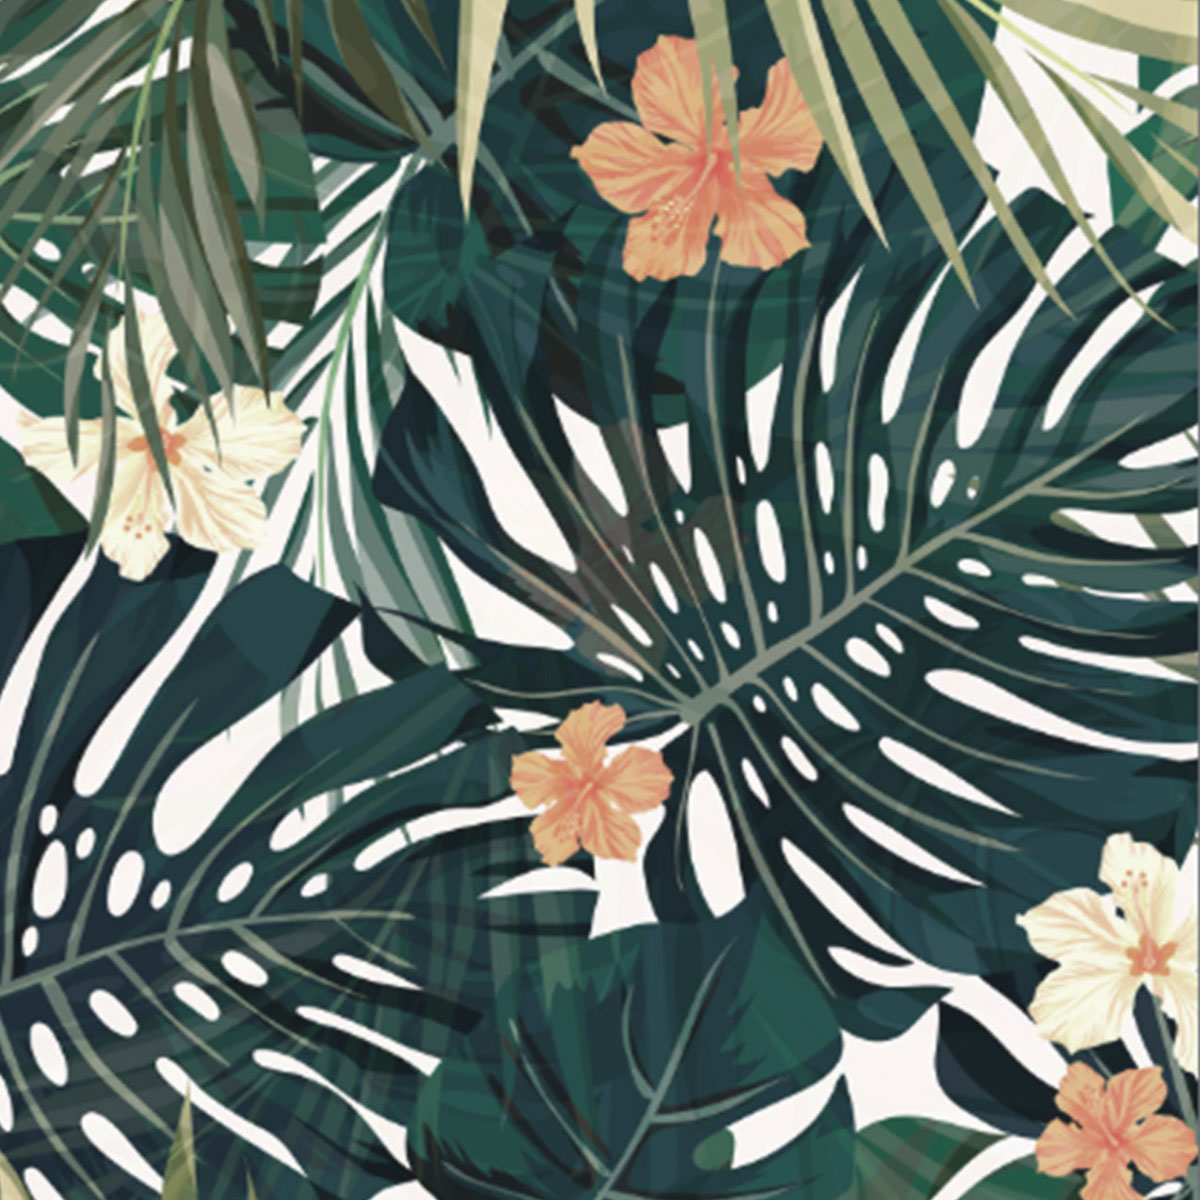 Tropicana - Patterned Tile - 600x1200mm